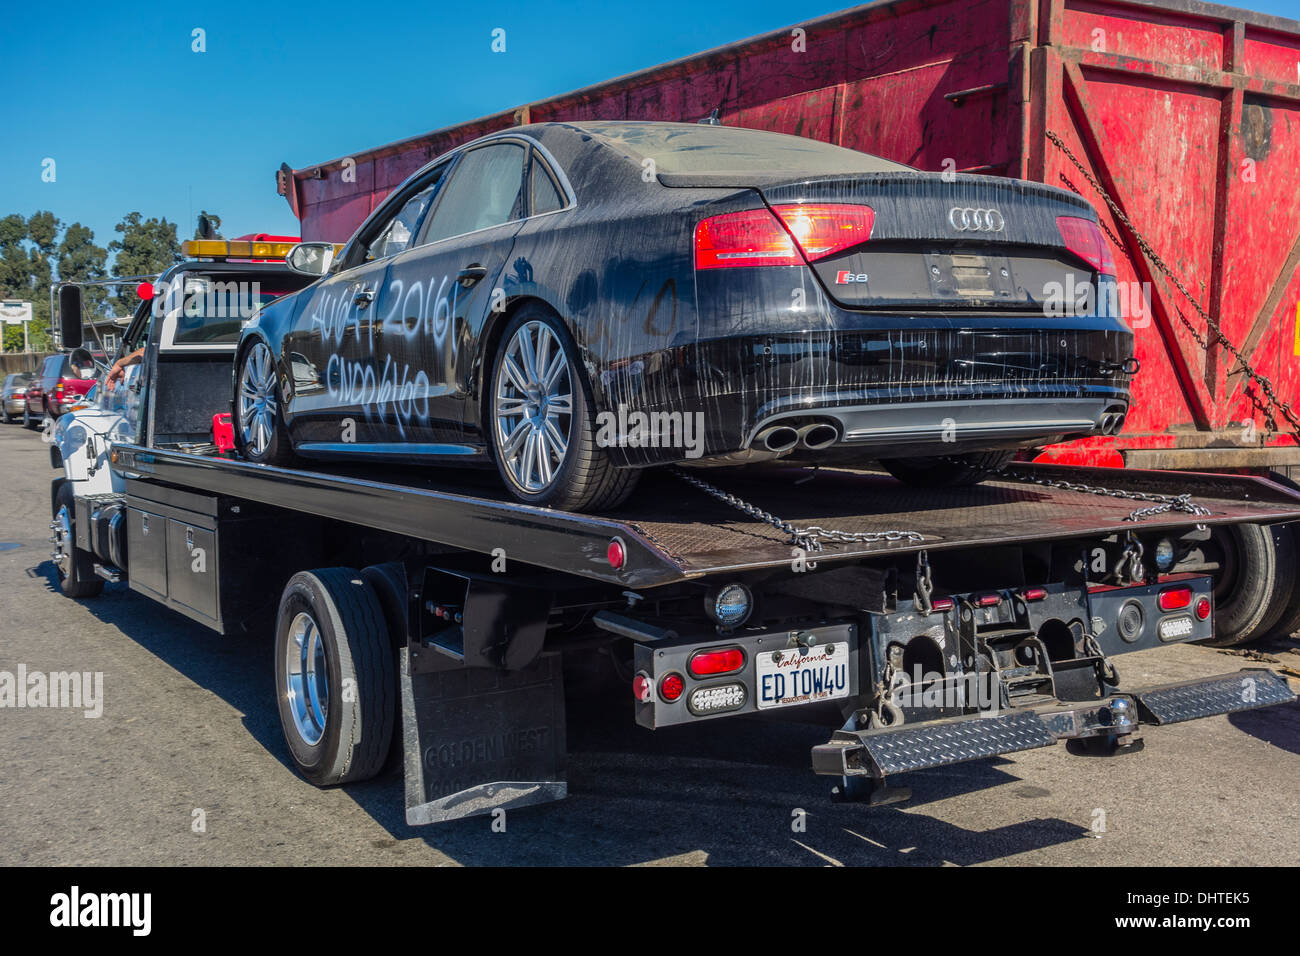 Wrecking Truck Stock Photos & Wrecking Truck Stock Images - Alamy